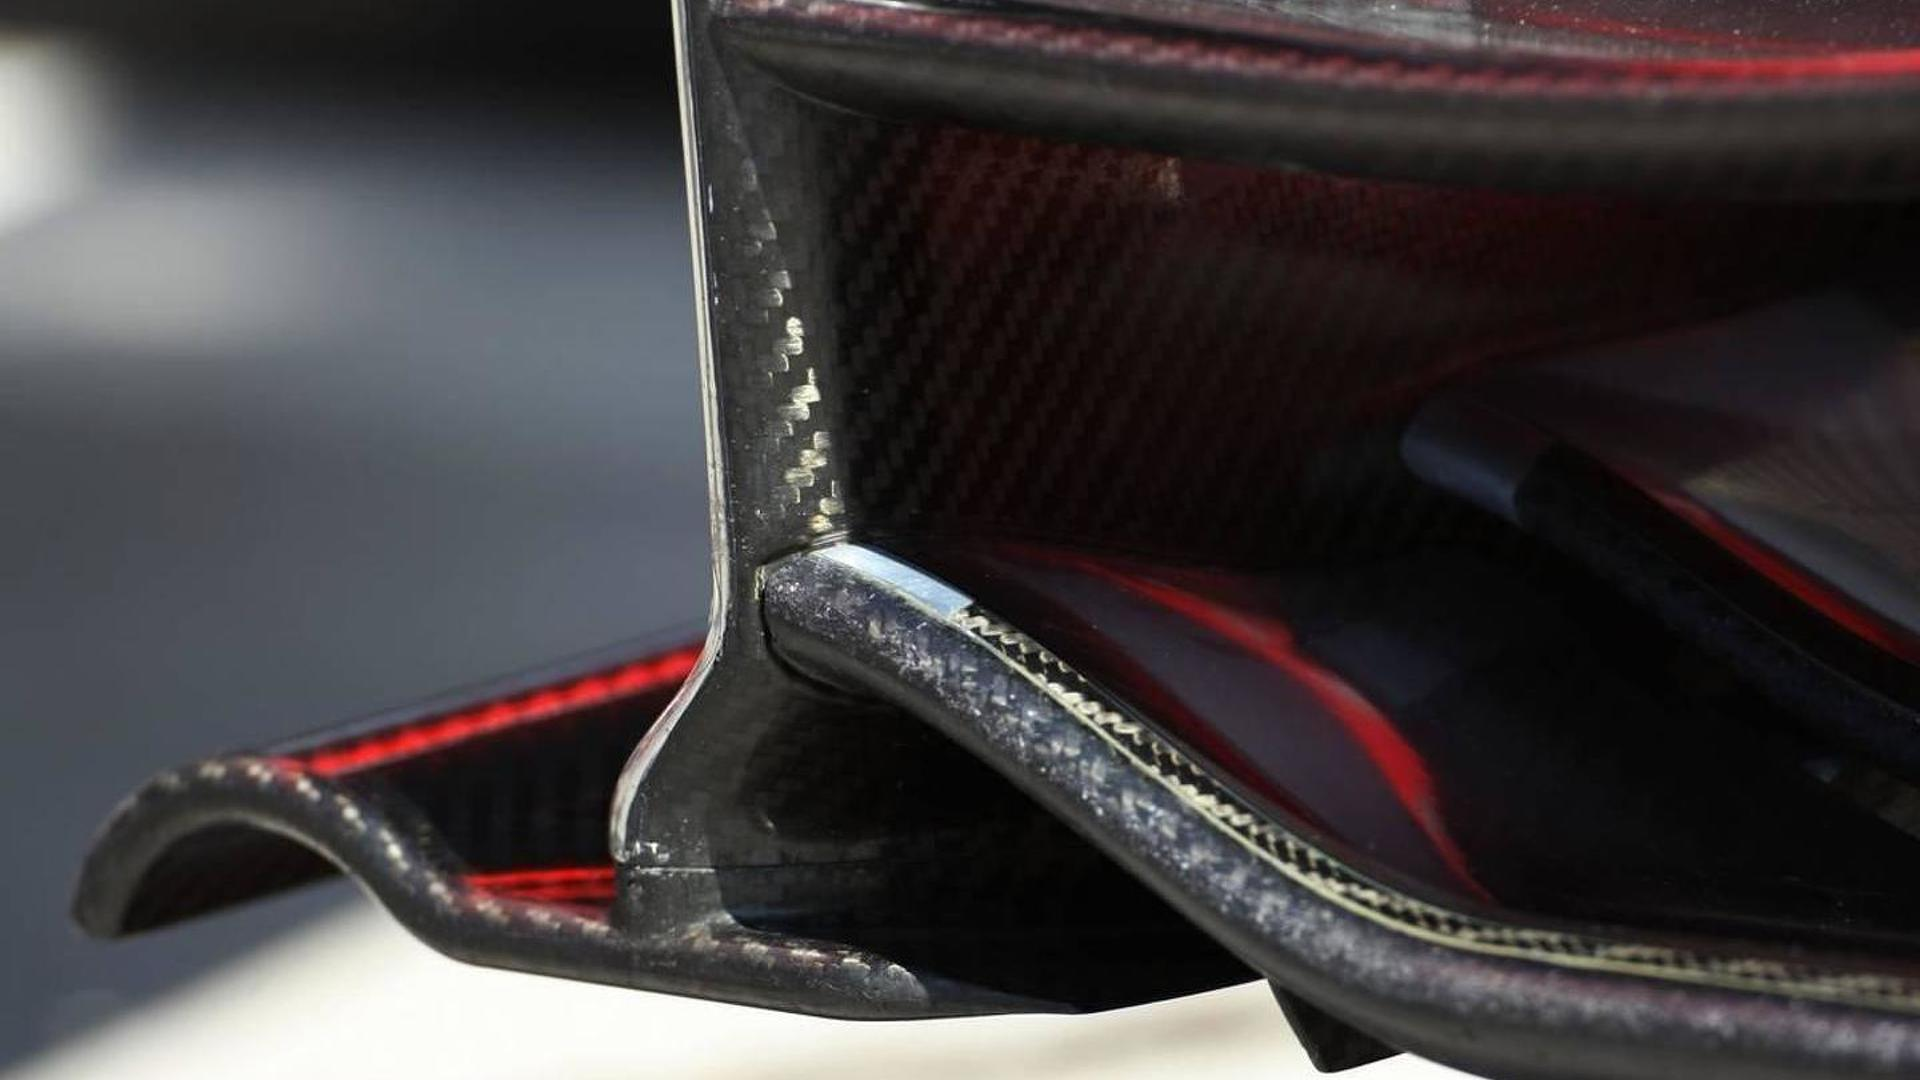 Rivals say McLaren turned down tougher flexi tests